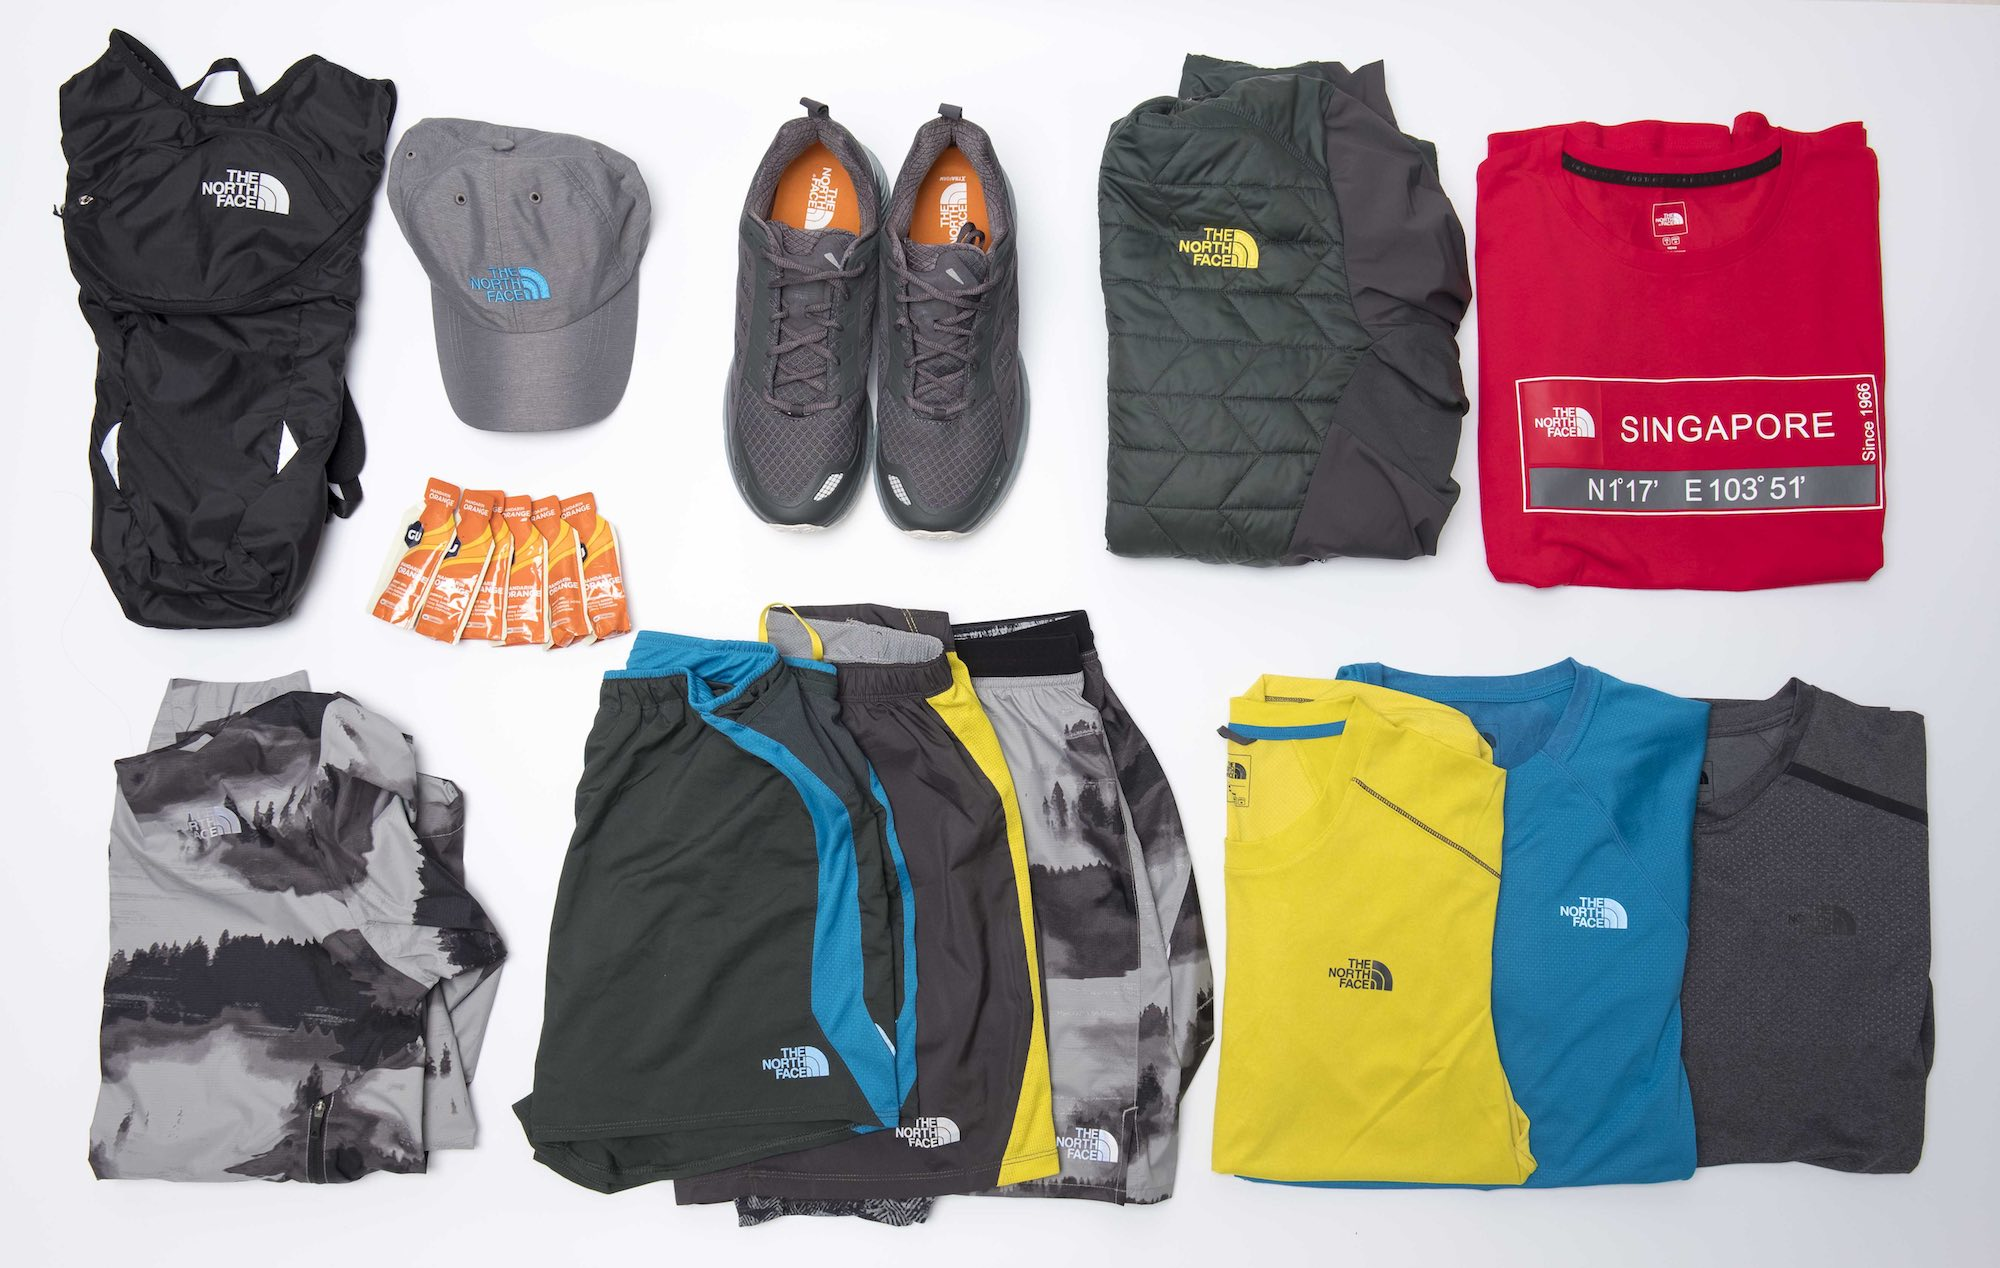 Product photography services studio photographer Singapore e-commerce shoot sport cloth gear the north face